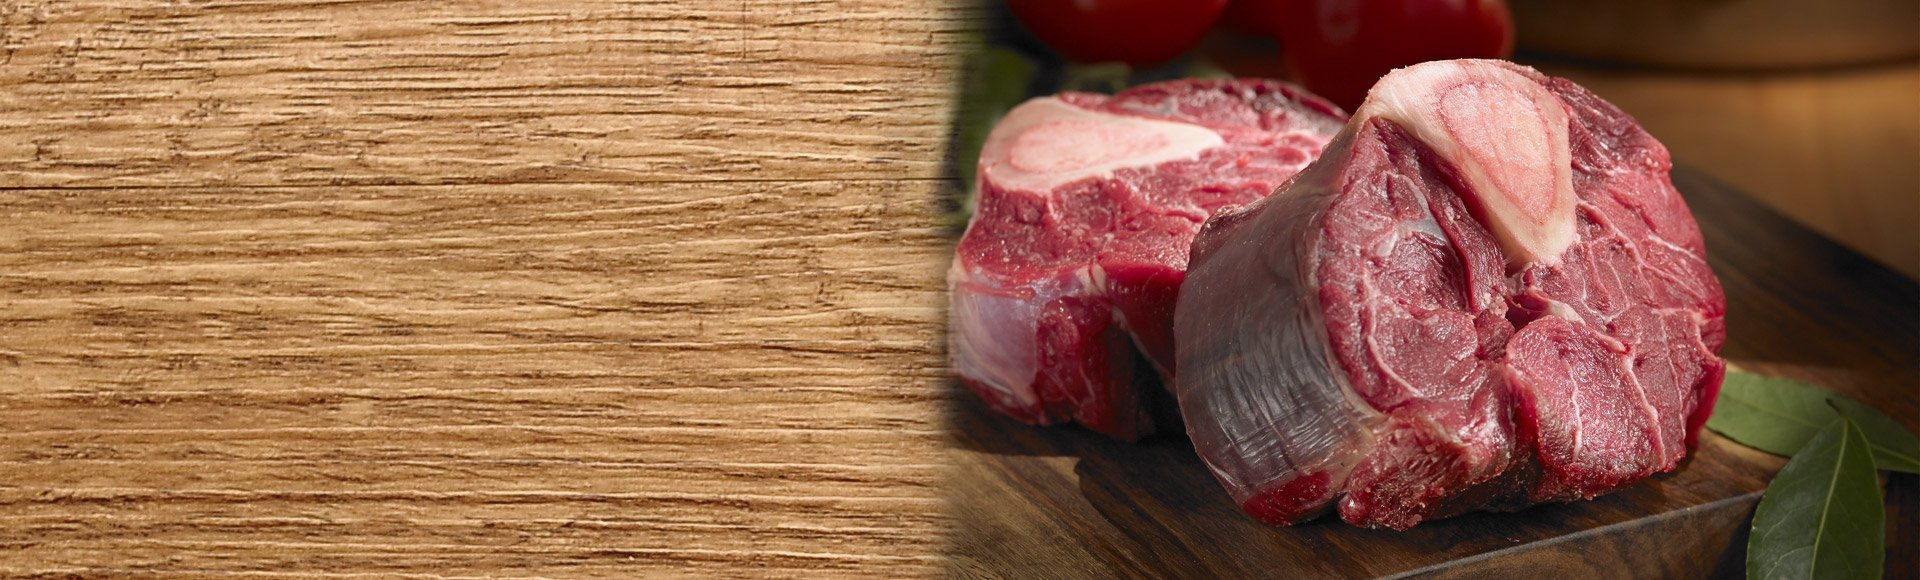 bison osso buco 2 pieces raw